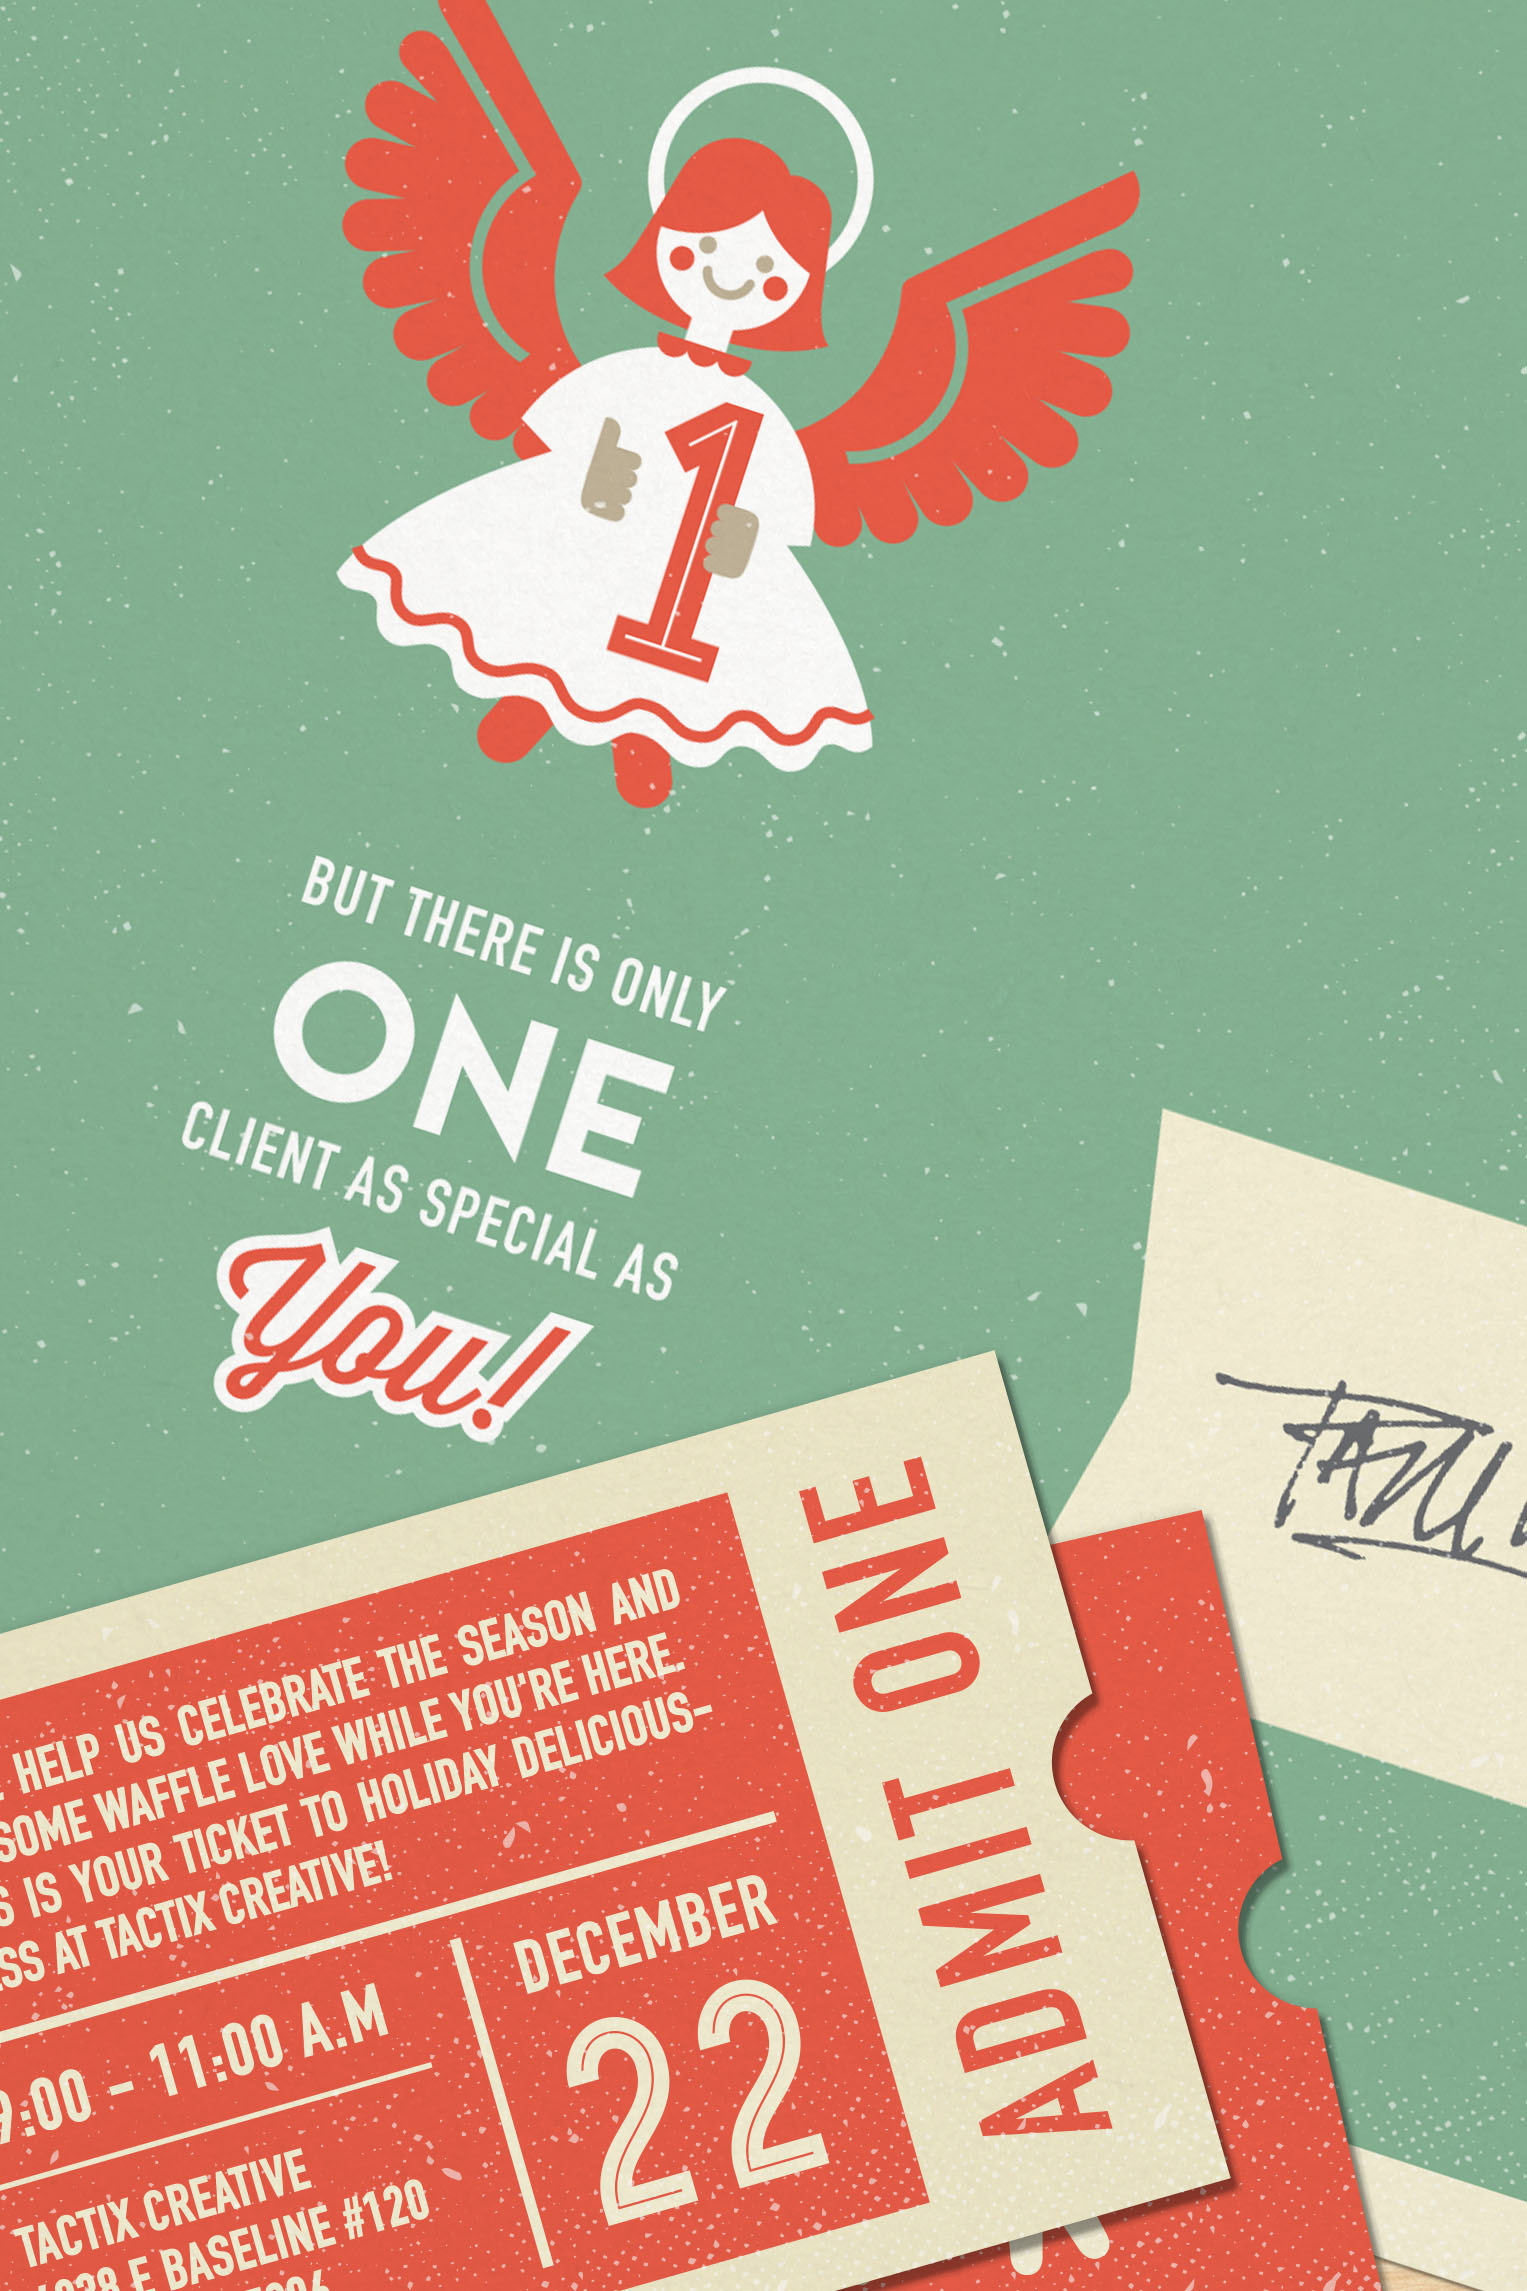 Paul howalt tactix creative holiday card reading these holiday fact oids accompanying the graphic icons seemed like a fun way to differentiate our companys card from the multitude of other holiday kristyandbryce Choice Image